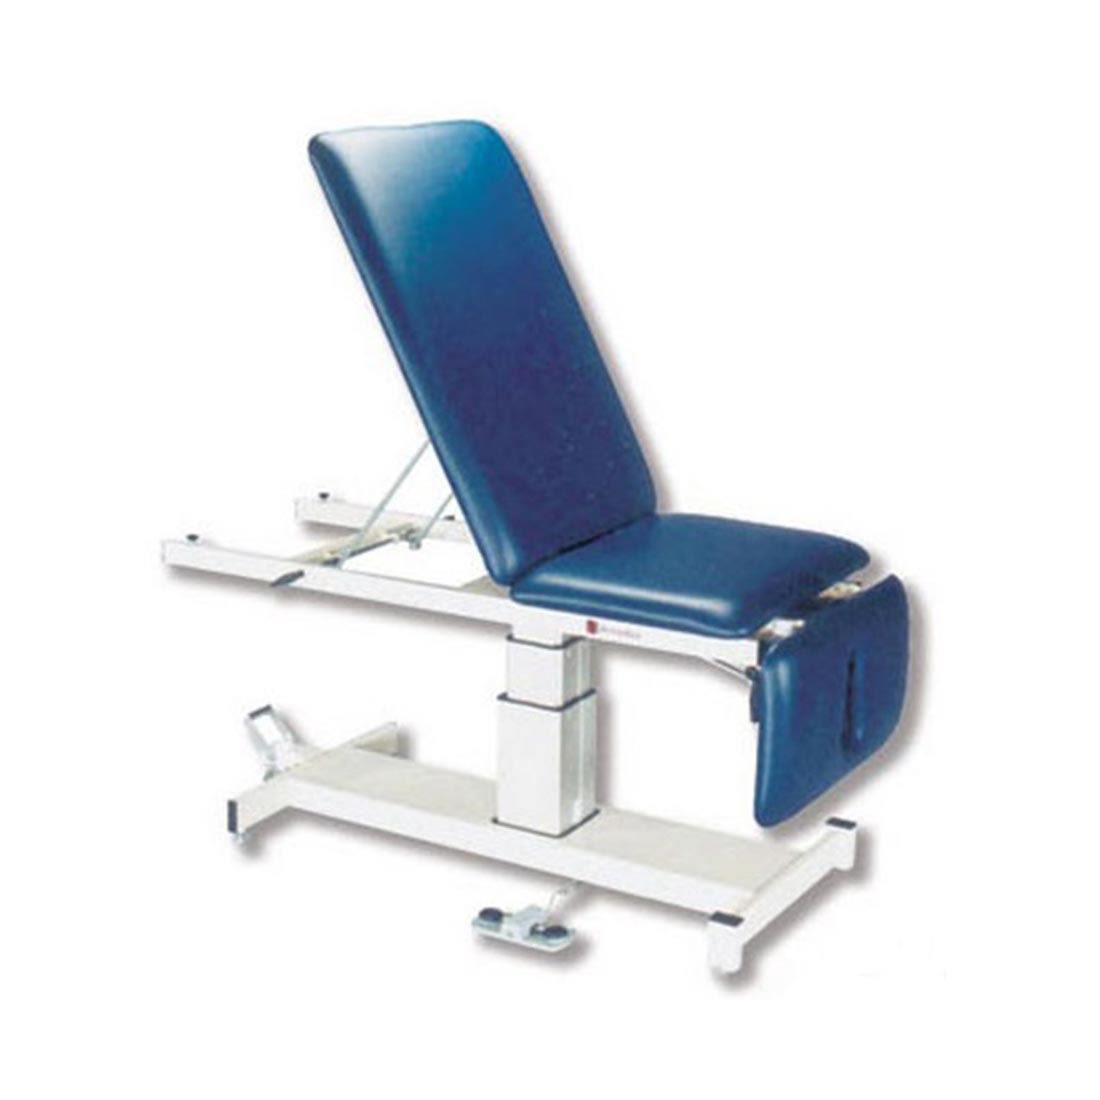 Armedica AM-SP 350 treatment table